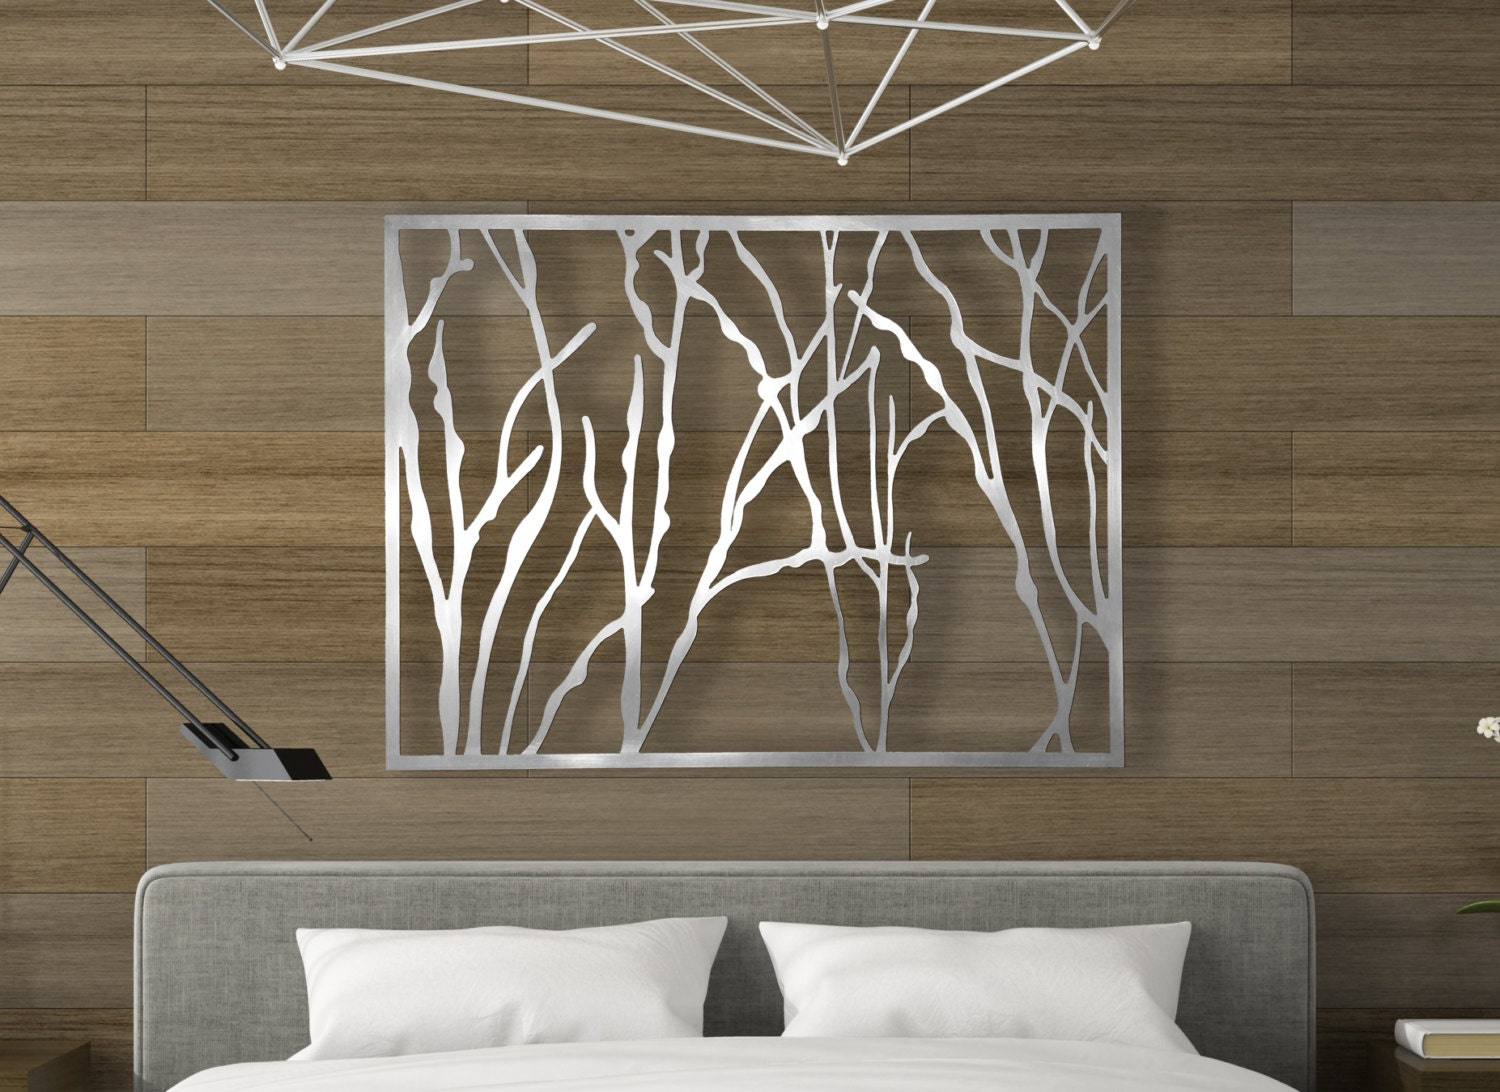 laser cut metal decorative wall art panel sculpture for home - 🔎zoom